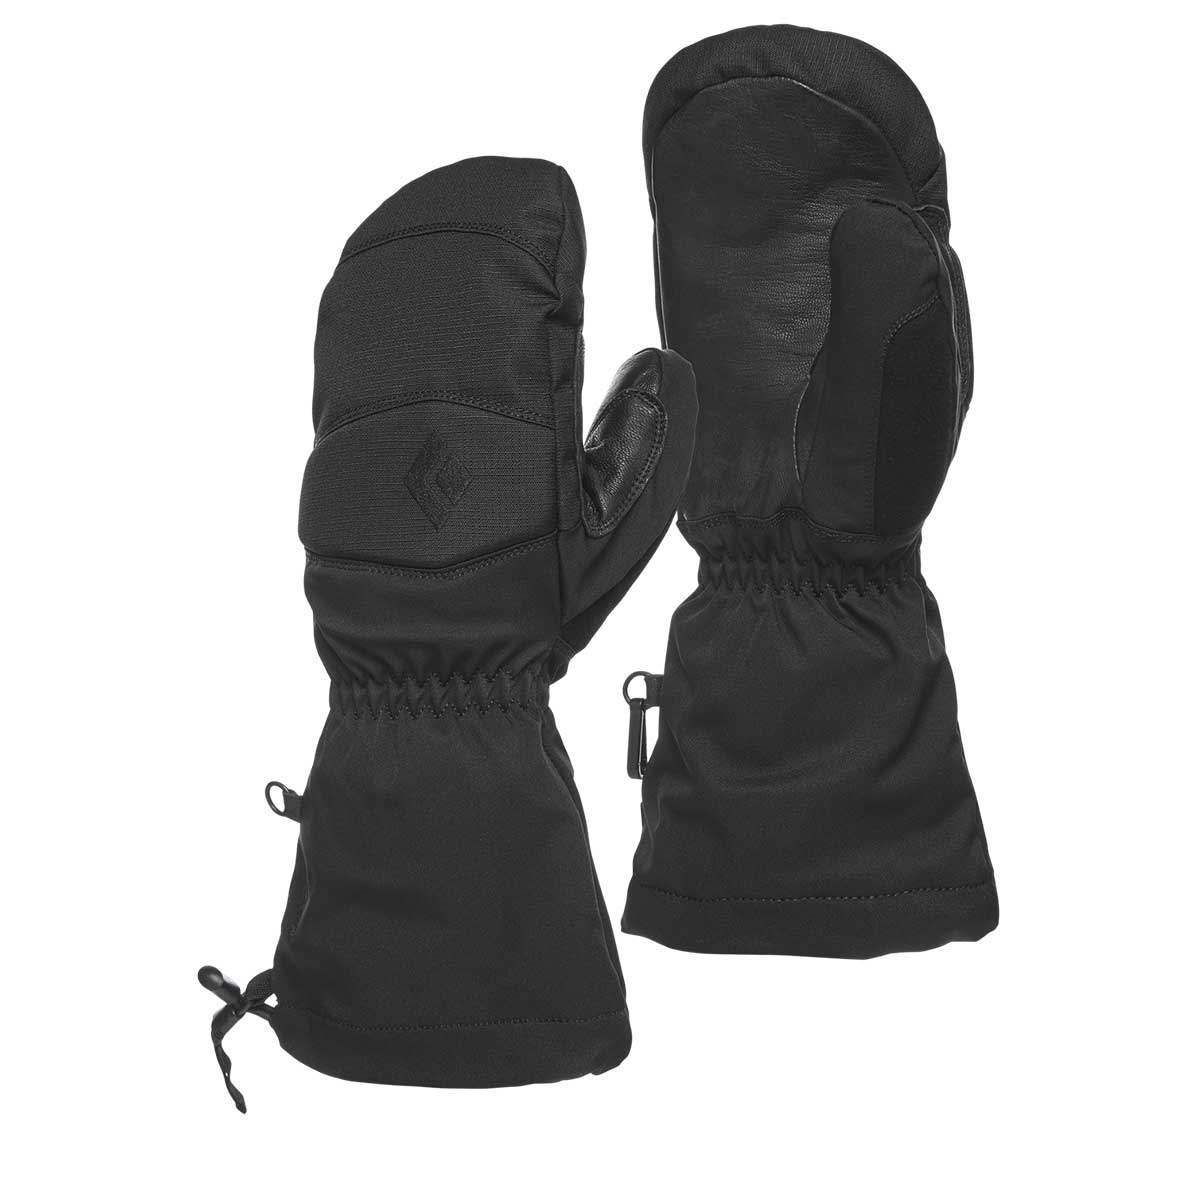 Black Diamond Women's Recon Mitt in Black